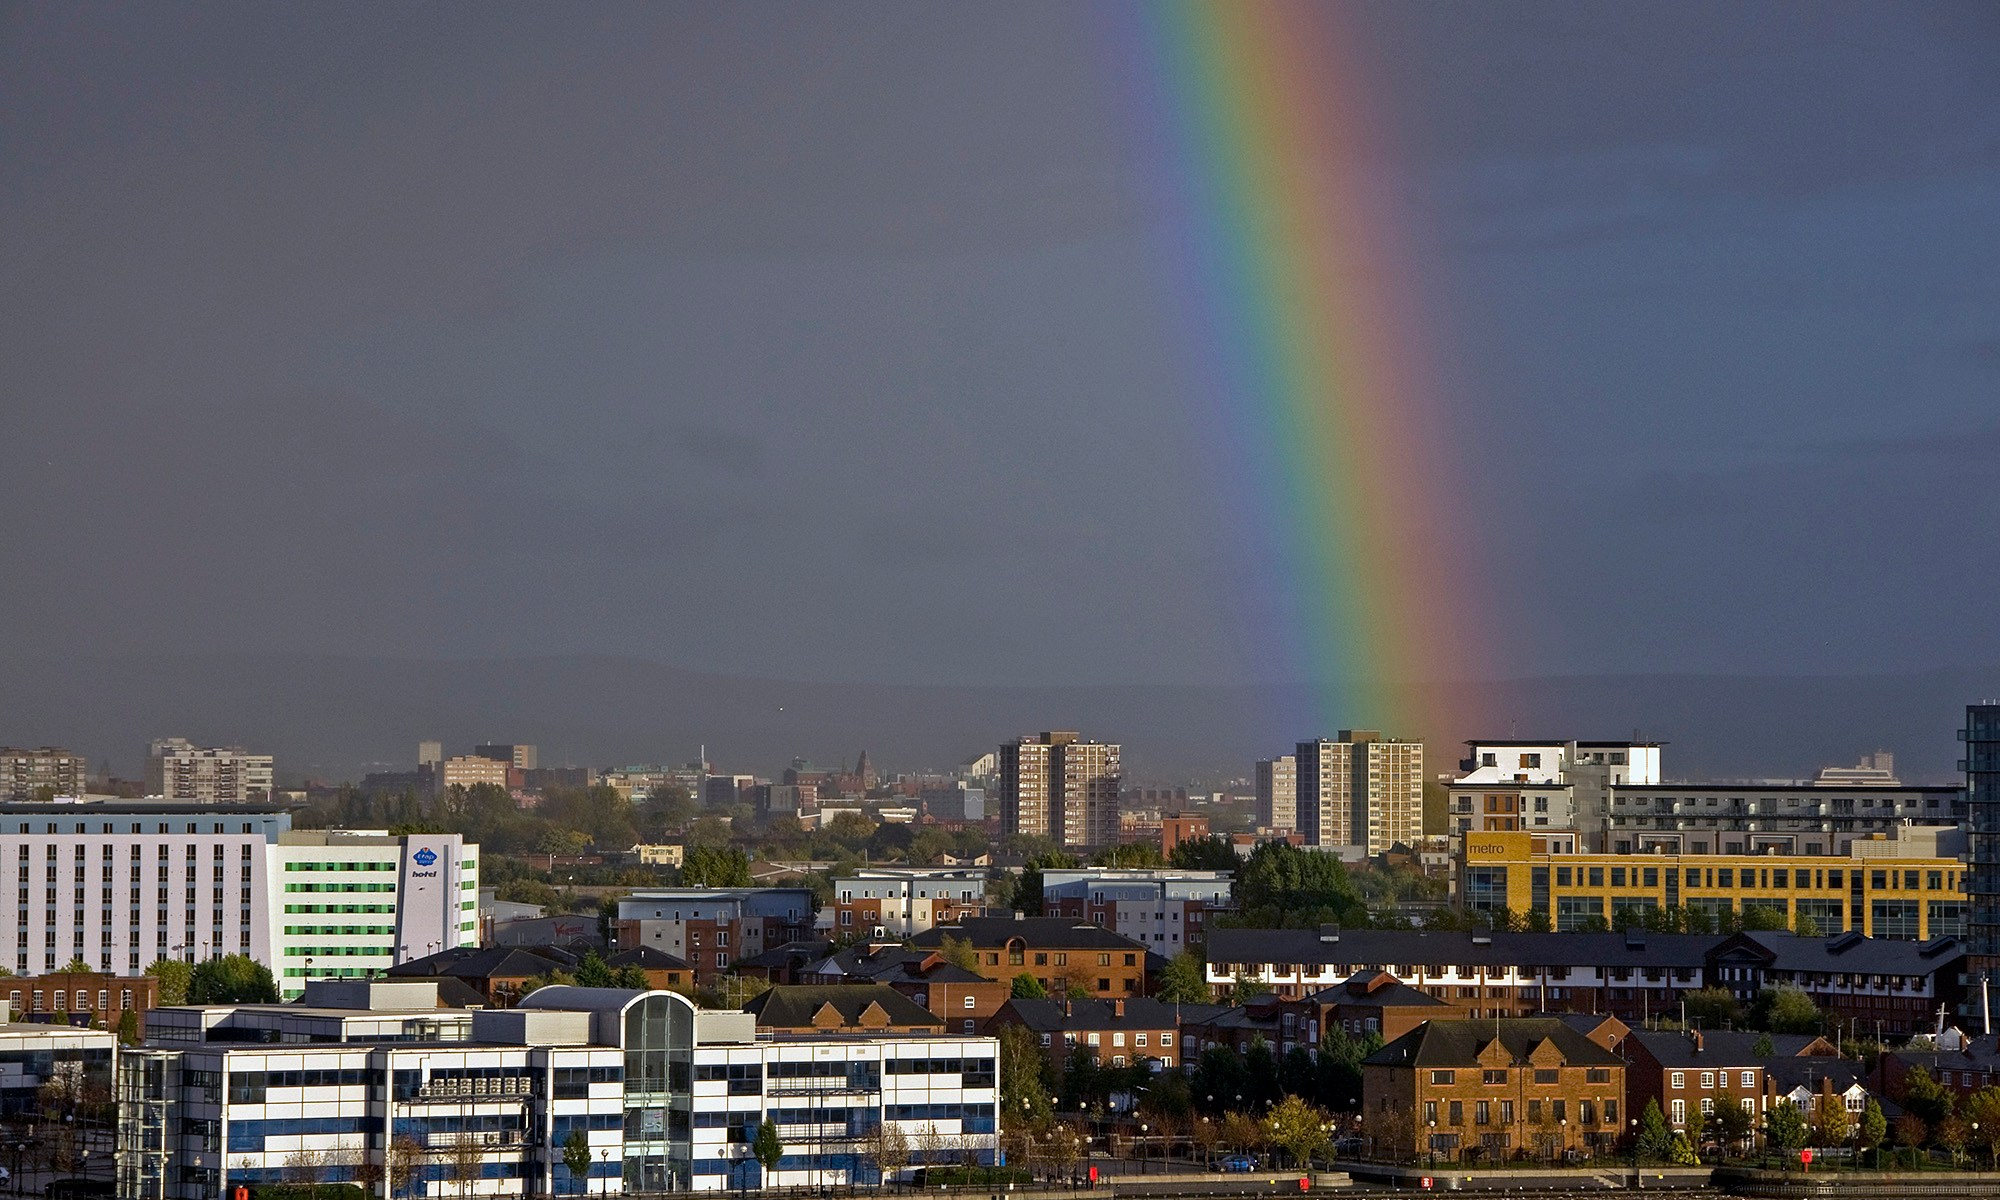 Rainbow over Hulme - Manchester